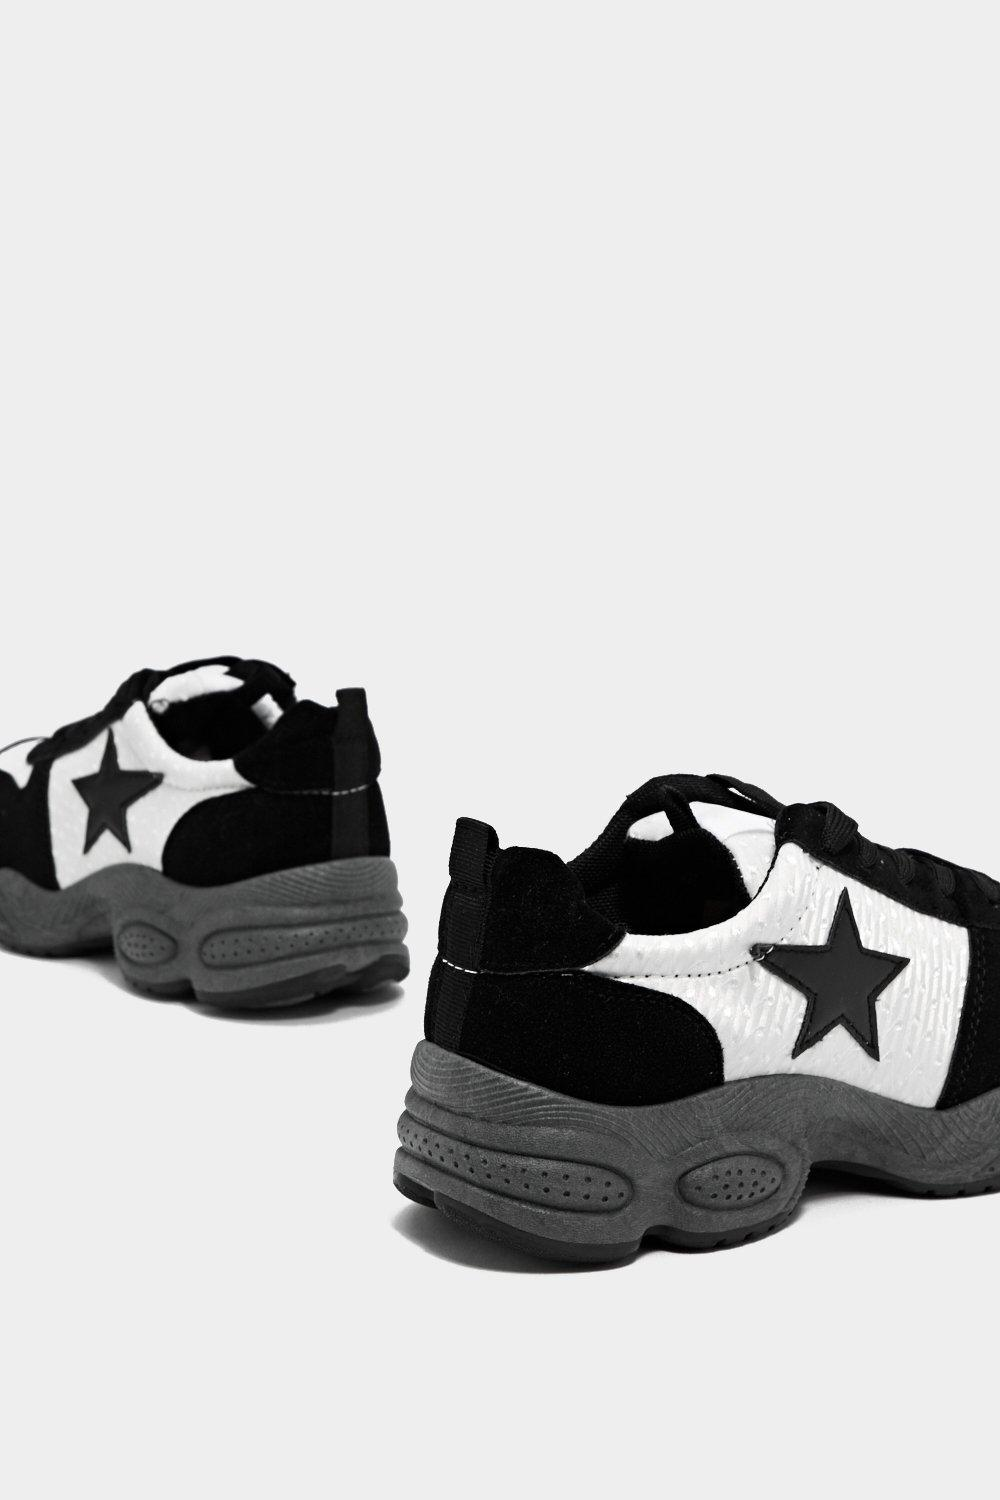 Blck Star Chunky Ugly Trainer websites sale online outlet with paypal order online free shipping really ckcW8